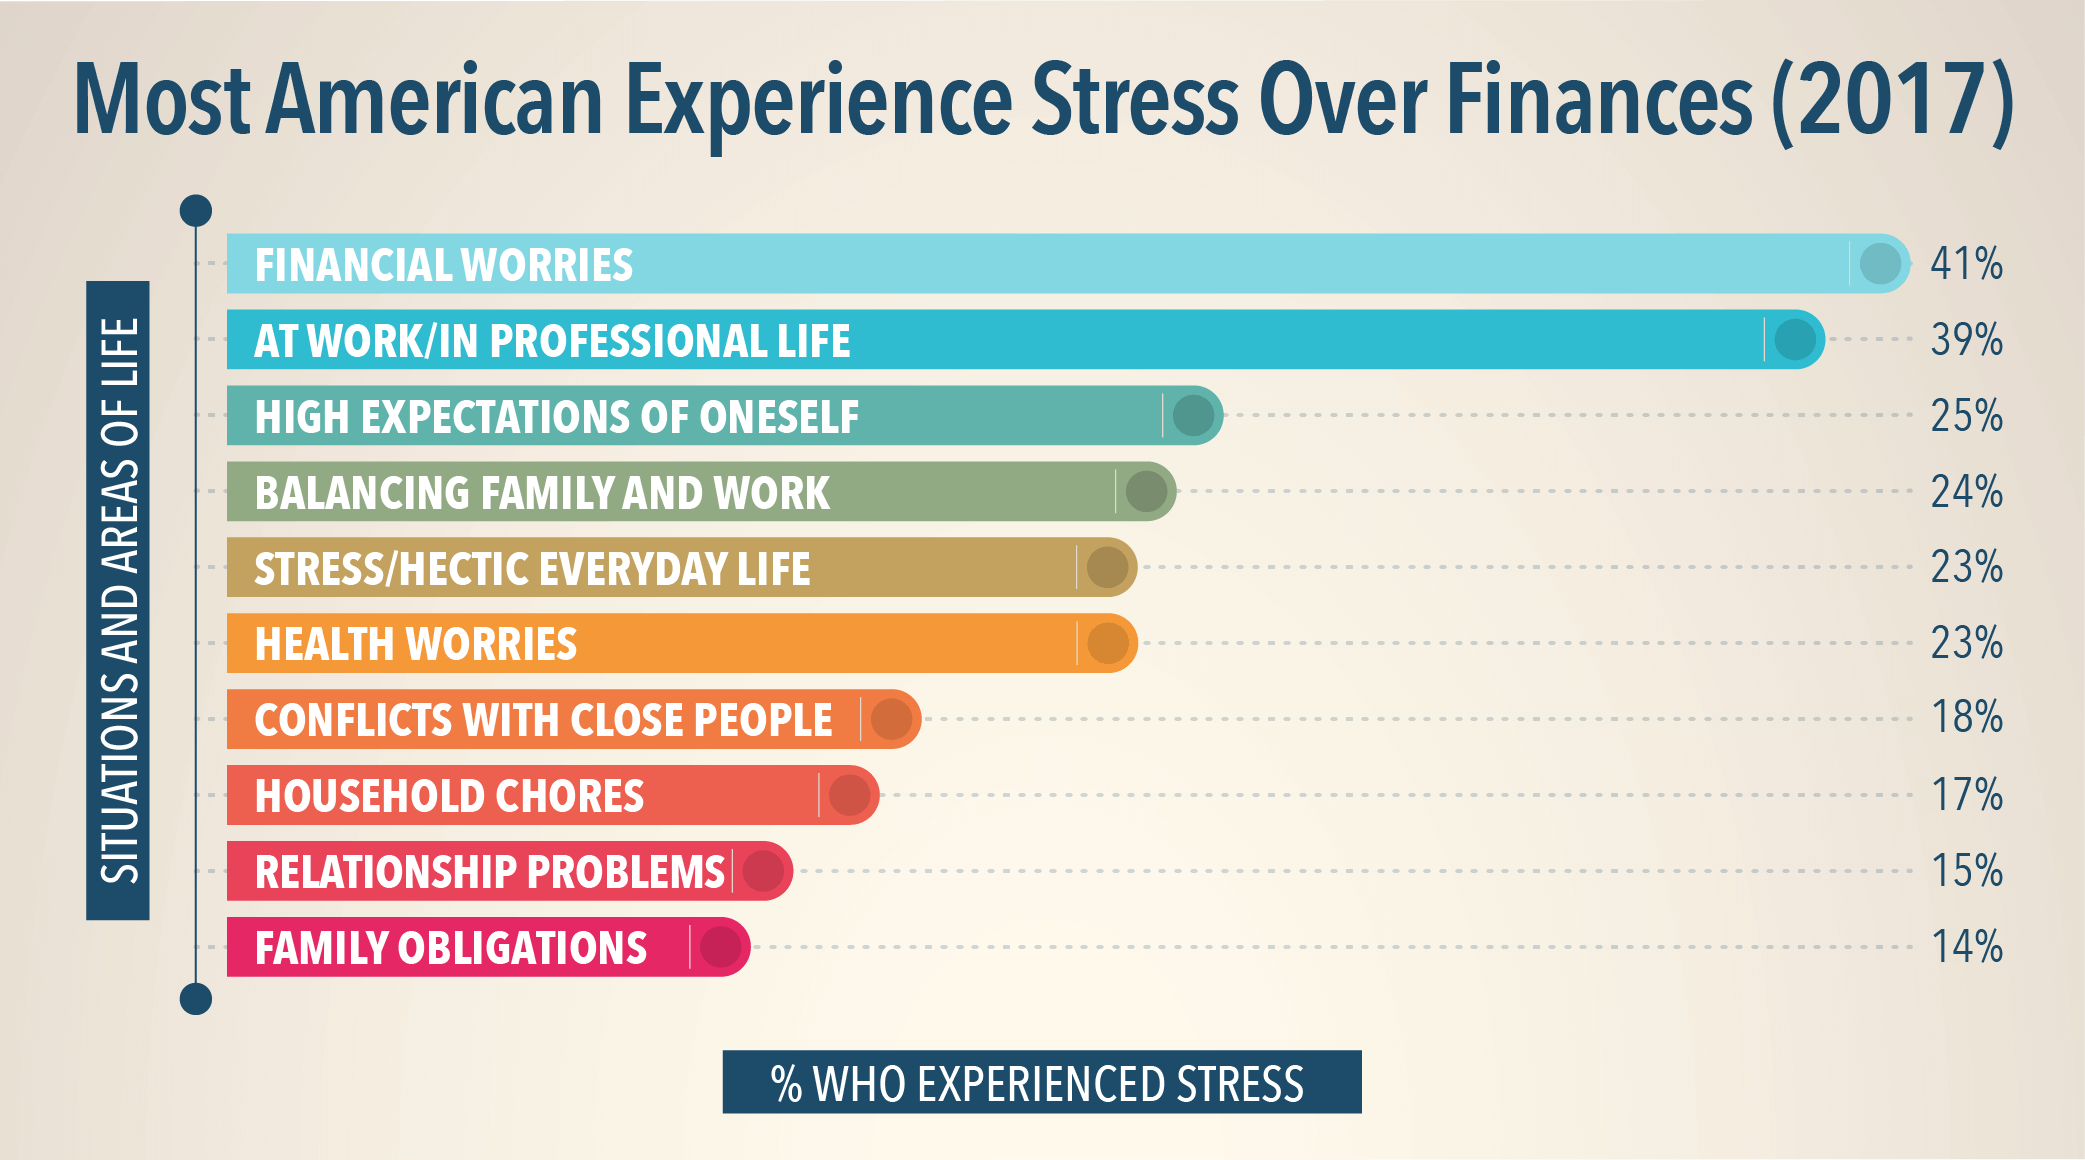 Most American Experiences Stress Over Finances 2017